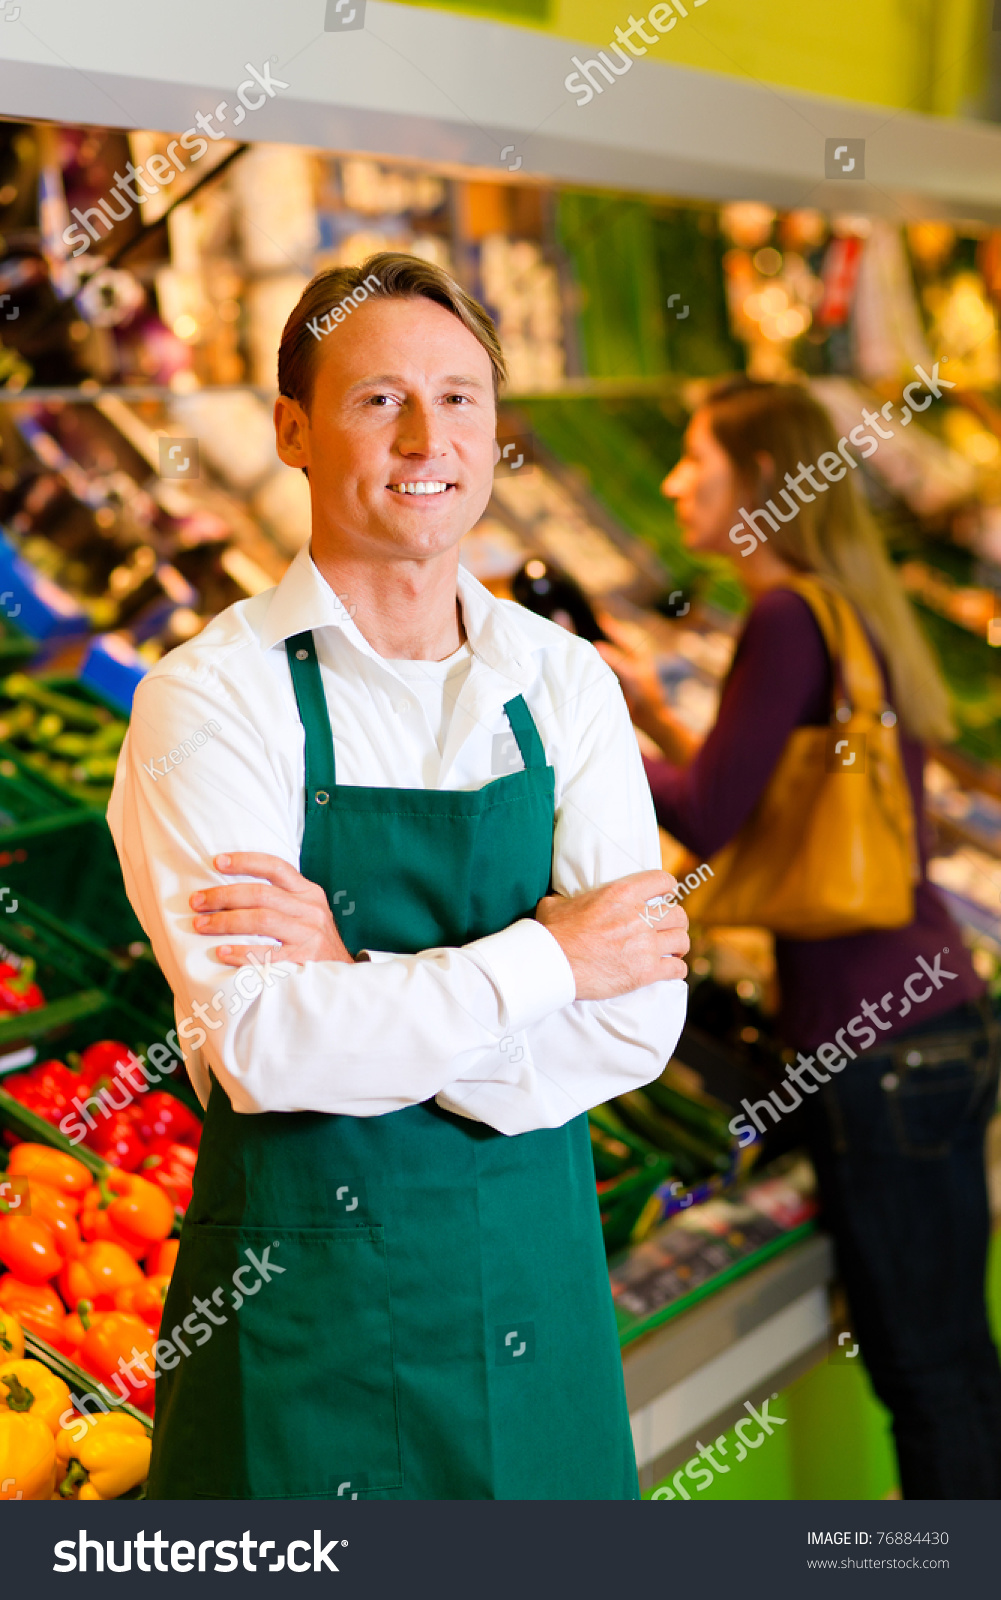 shop assistant in a supermarket at the vegetable shelf in the save to a lightbox